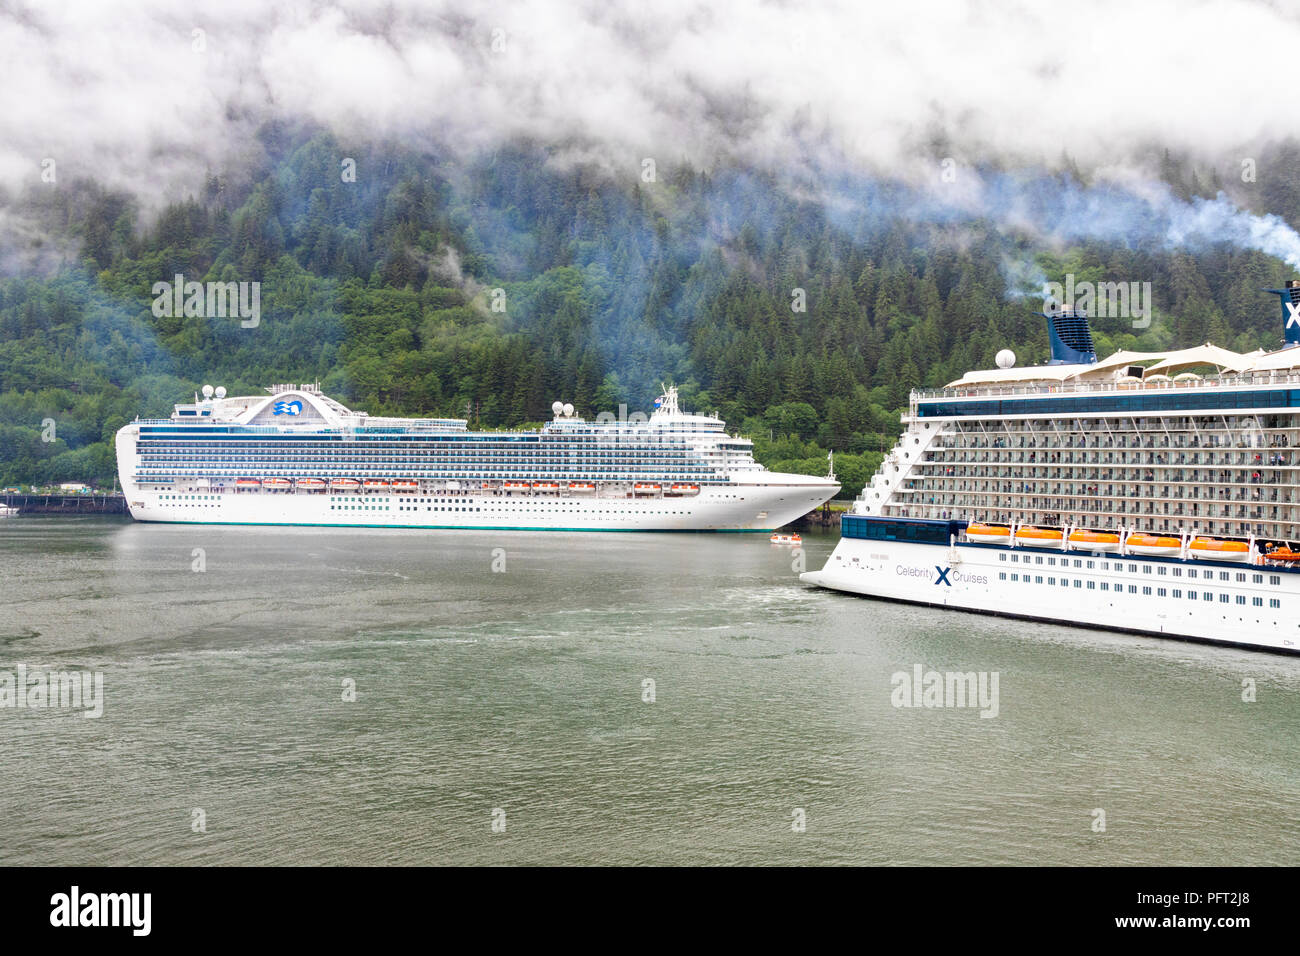 Cruise ships in harbour at Juneau the capital city of Alaska, USA - Stock Image